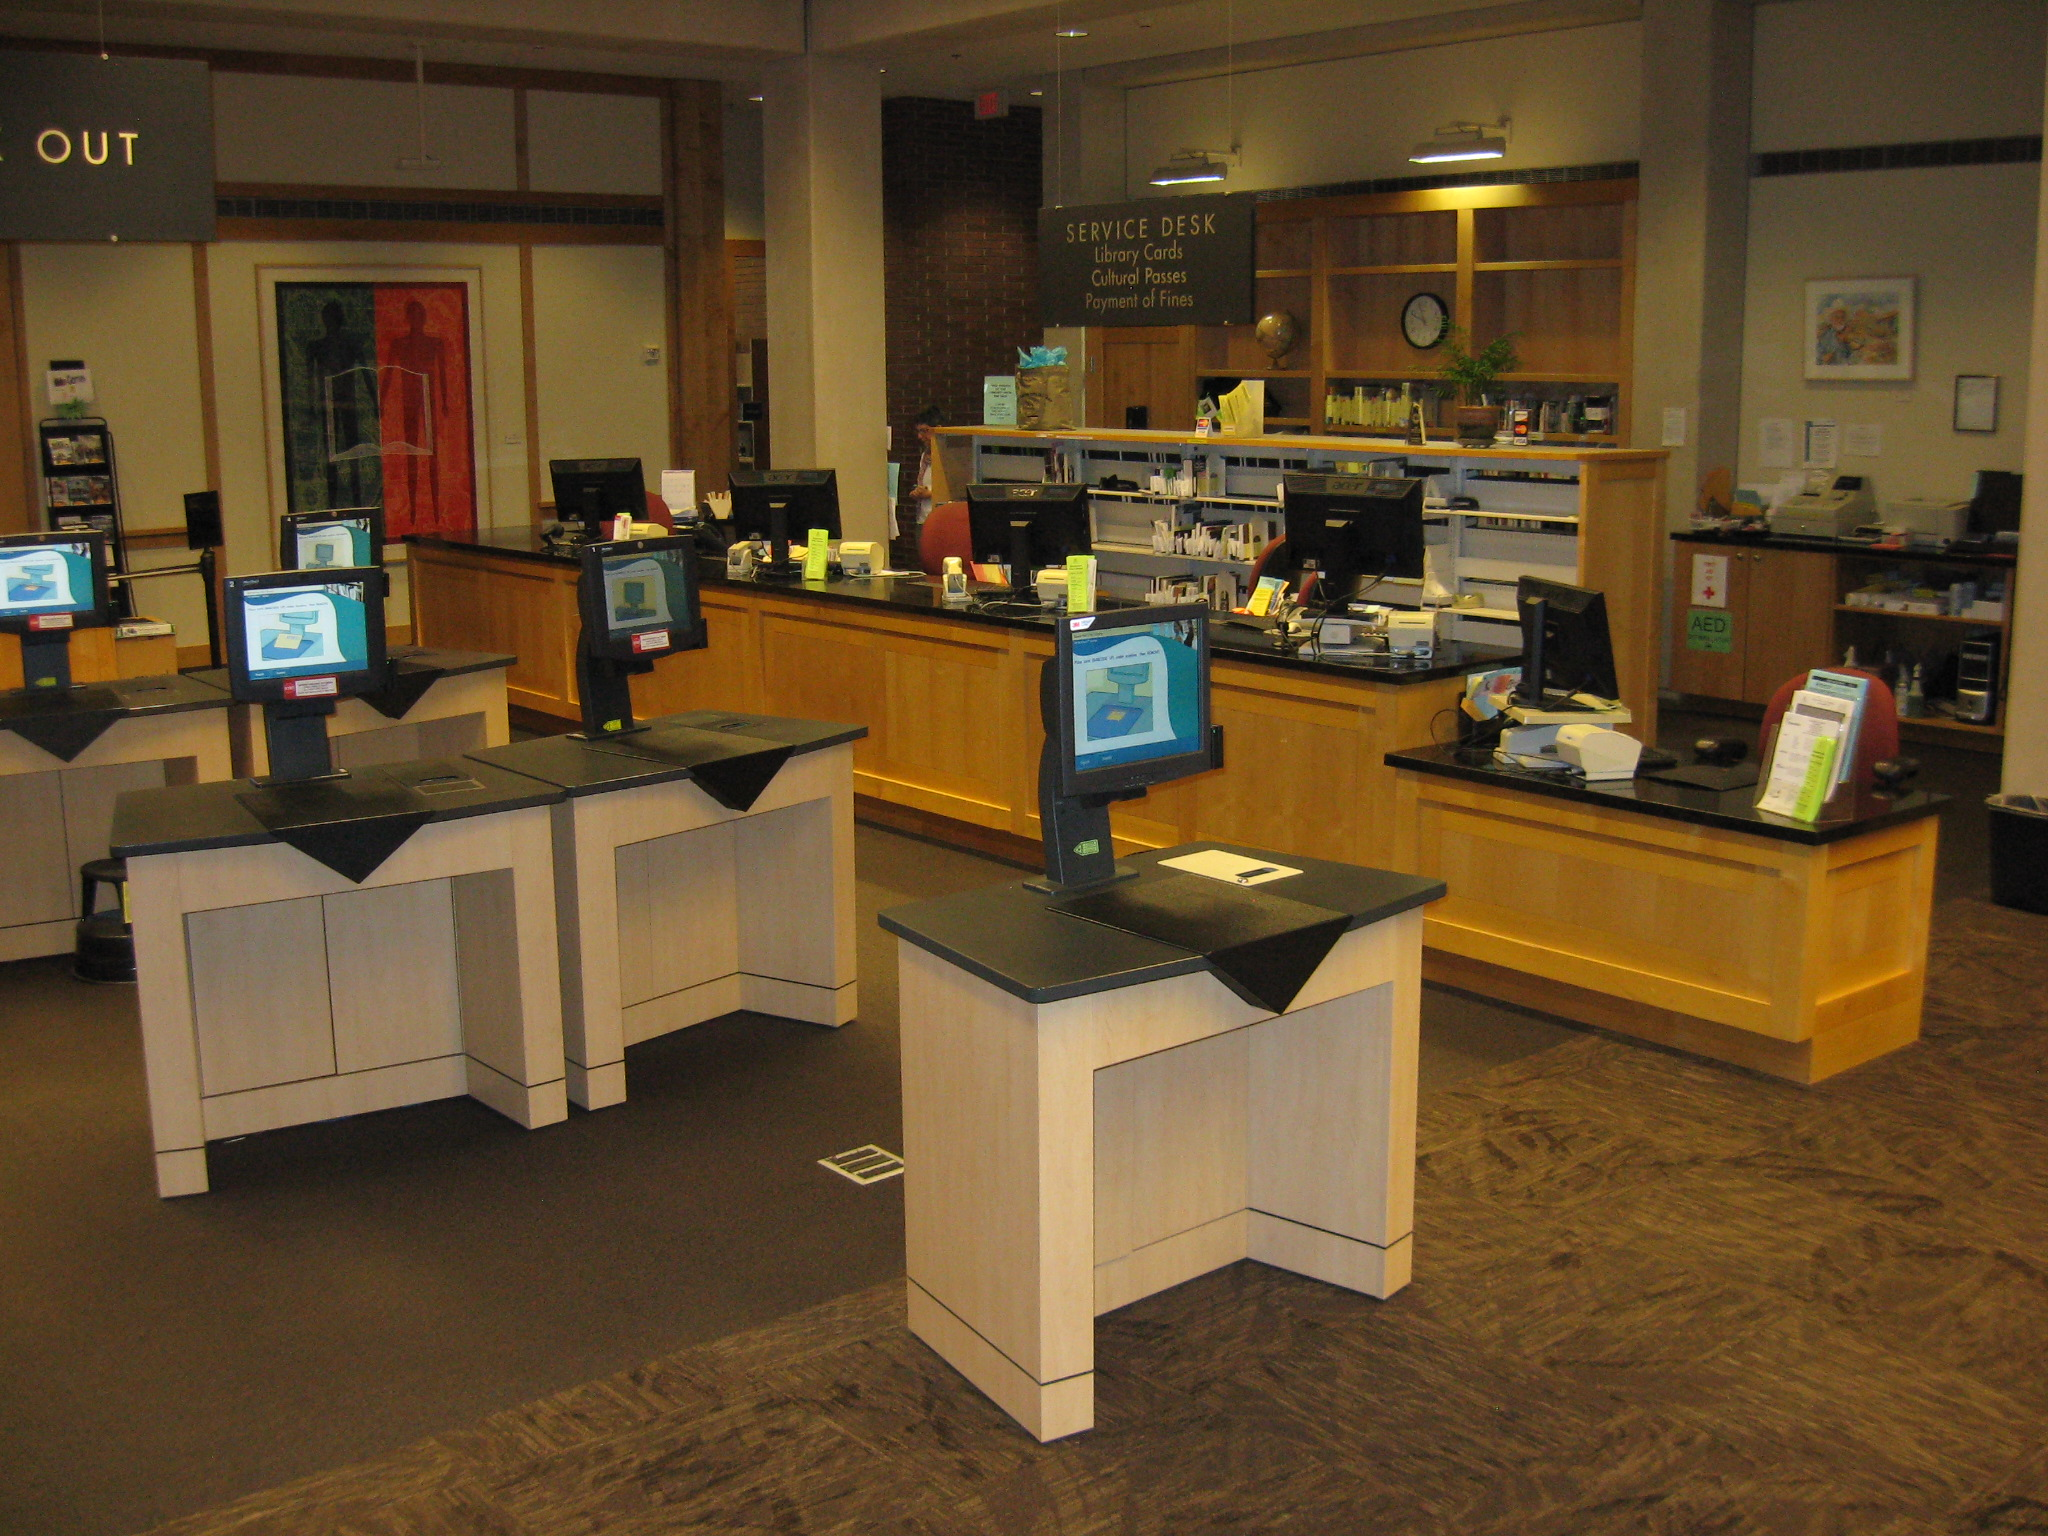 Self Checks and Circulation Desk